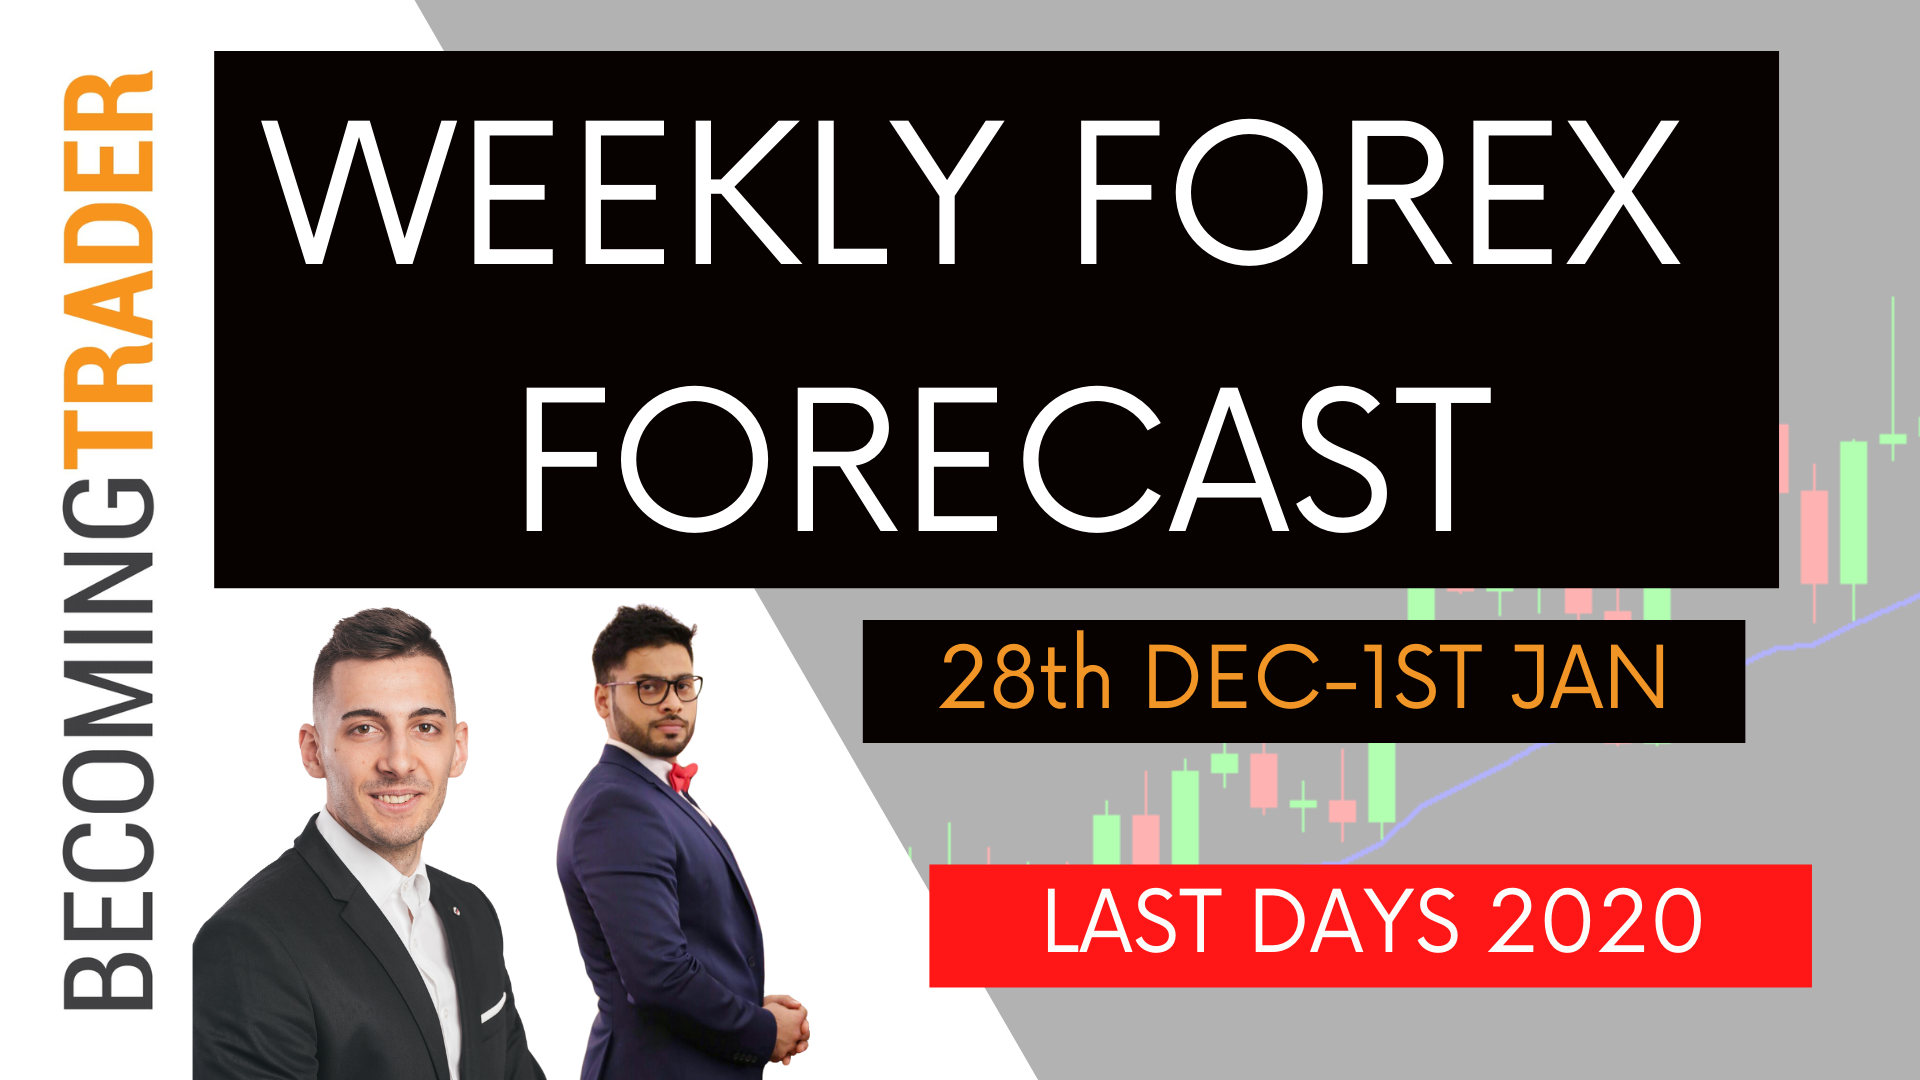 Weekly Forex Forecast 28th Dec 2020 to 1st Jan 2021 | Last Days of 2020